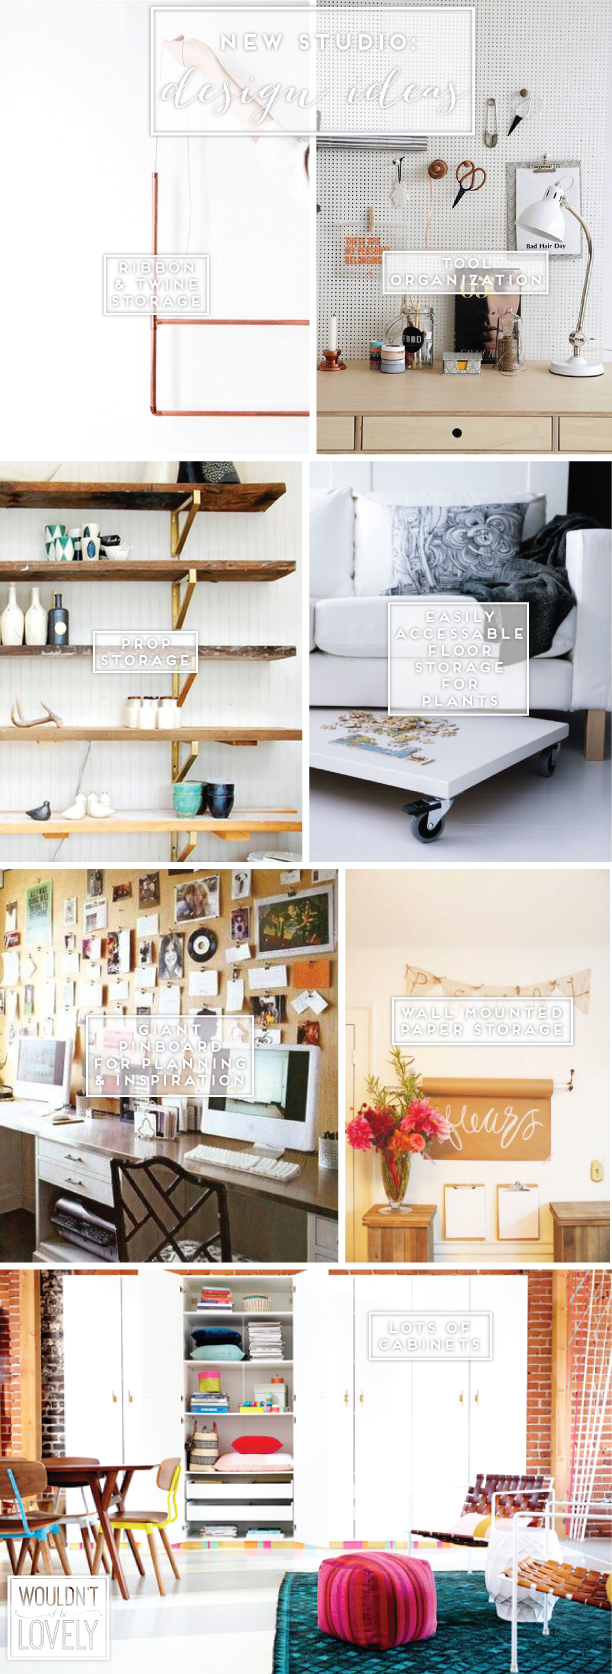 hanging copper pipes ,  peg board ,  shelves ,  desktop with   casters, giant pin board ,  paper rolls ,  cabinets